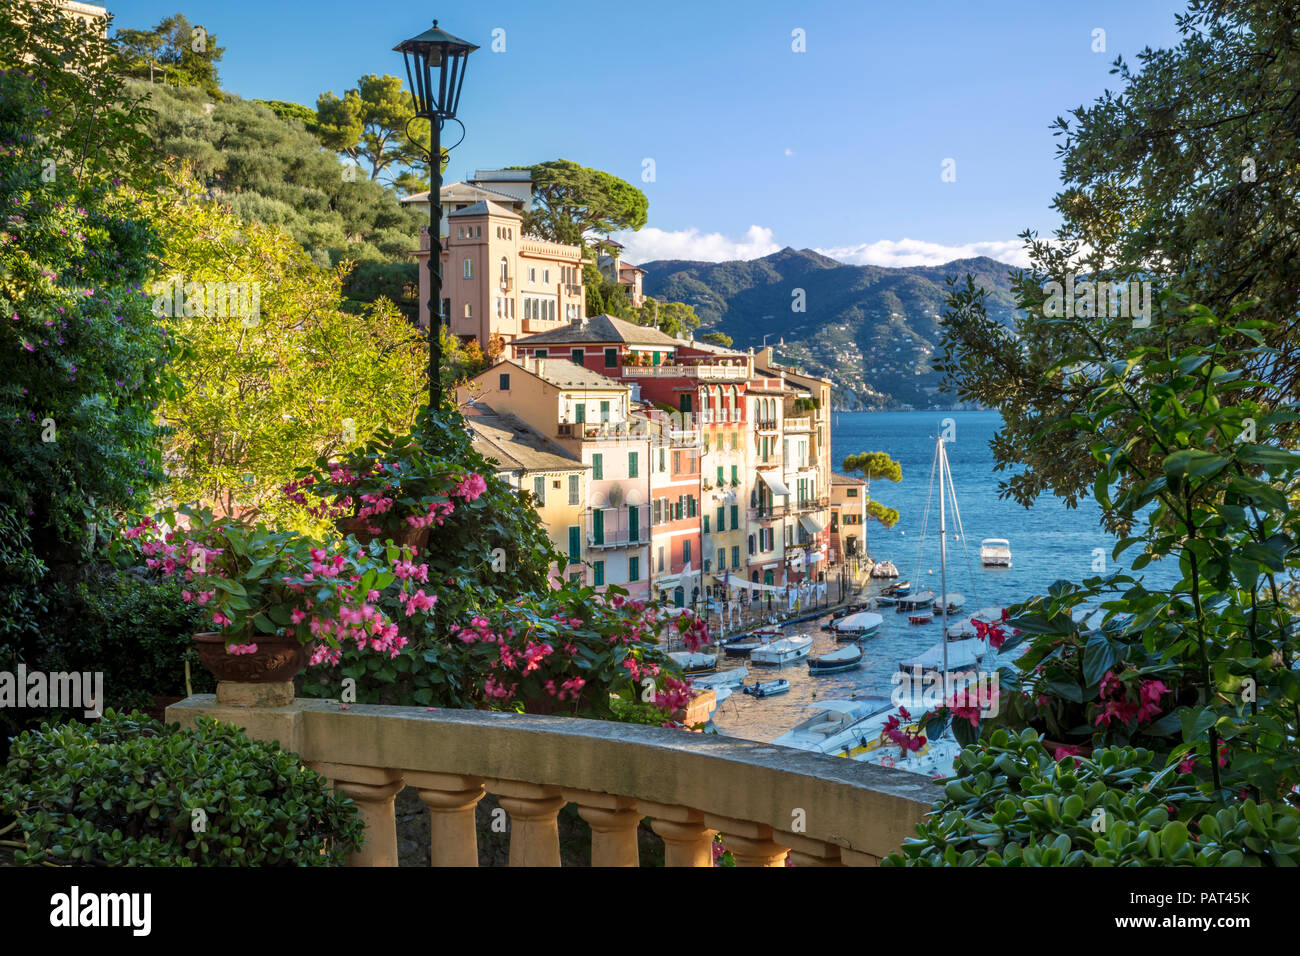 Early morning view over harbor town of Portofino, Liguria, Italy - Stock Image